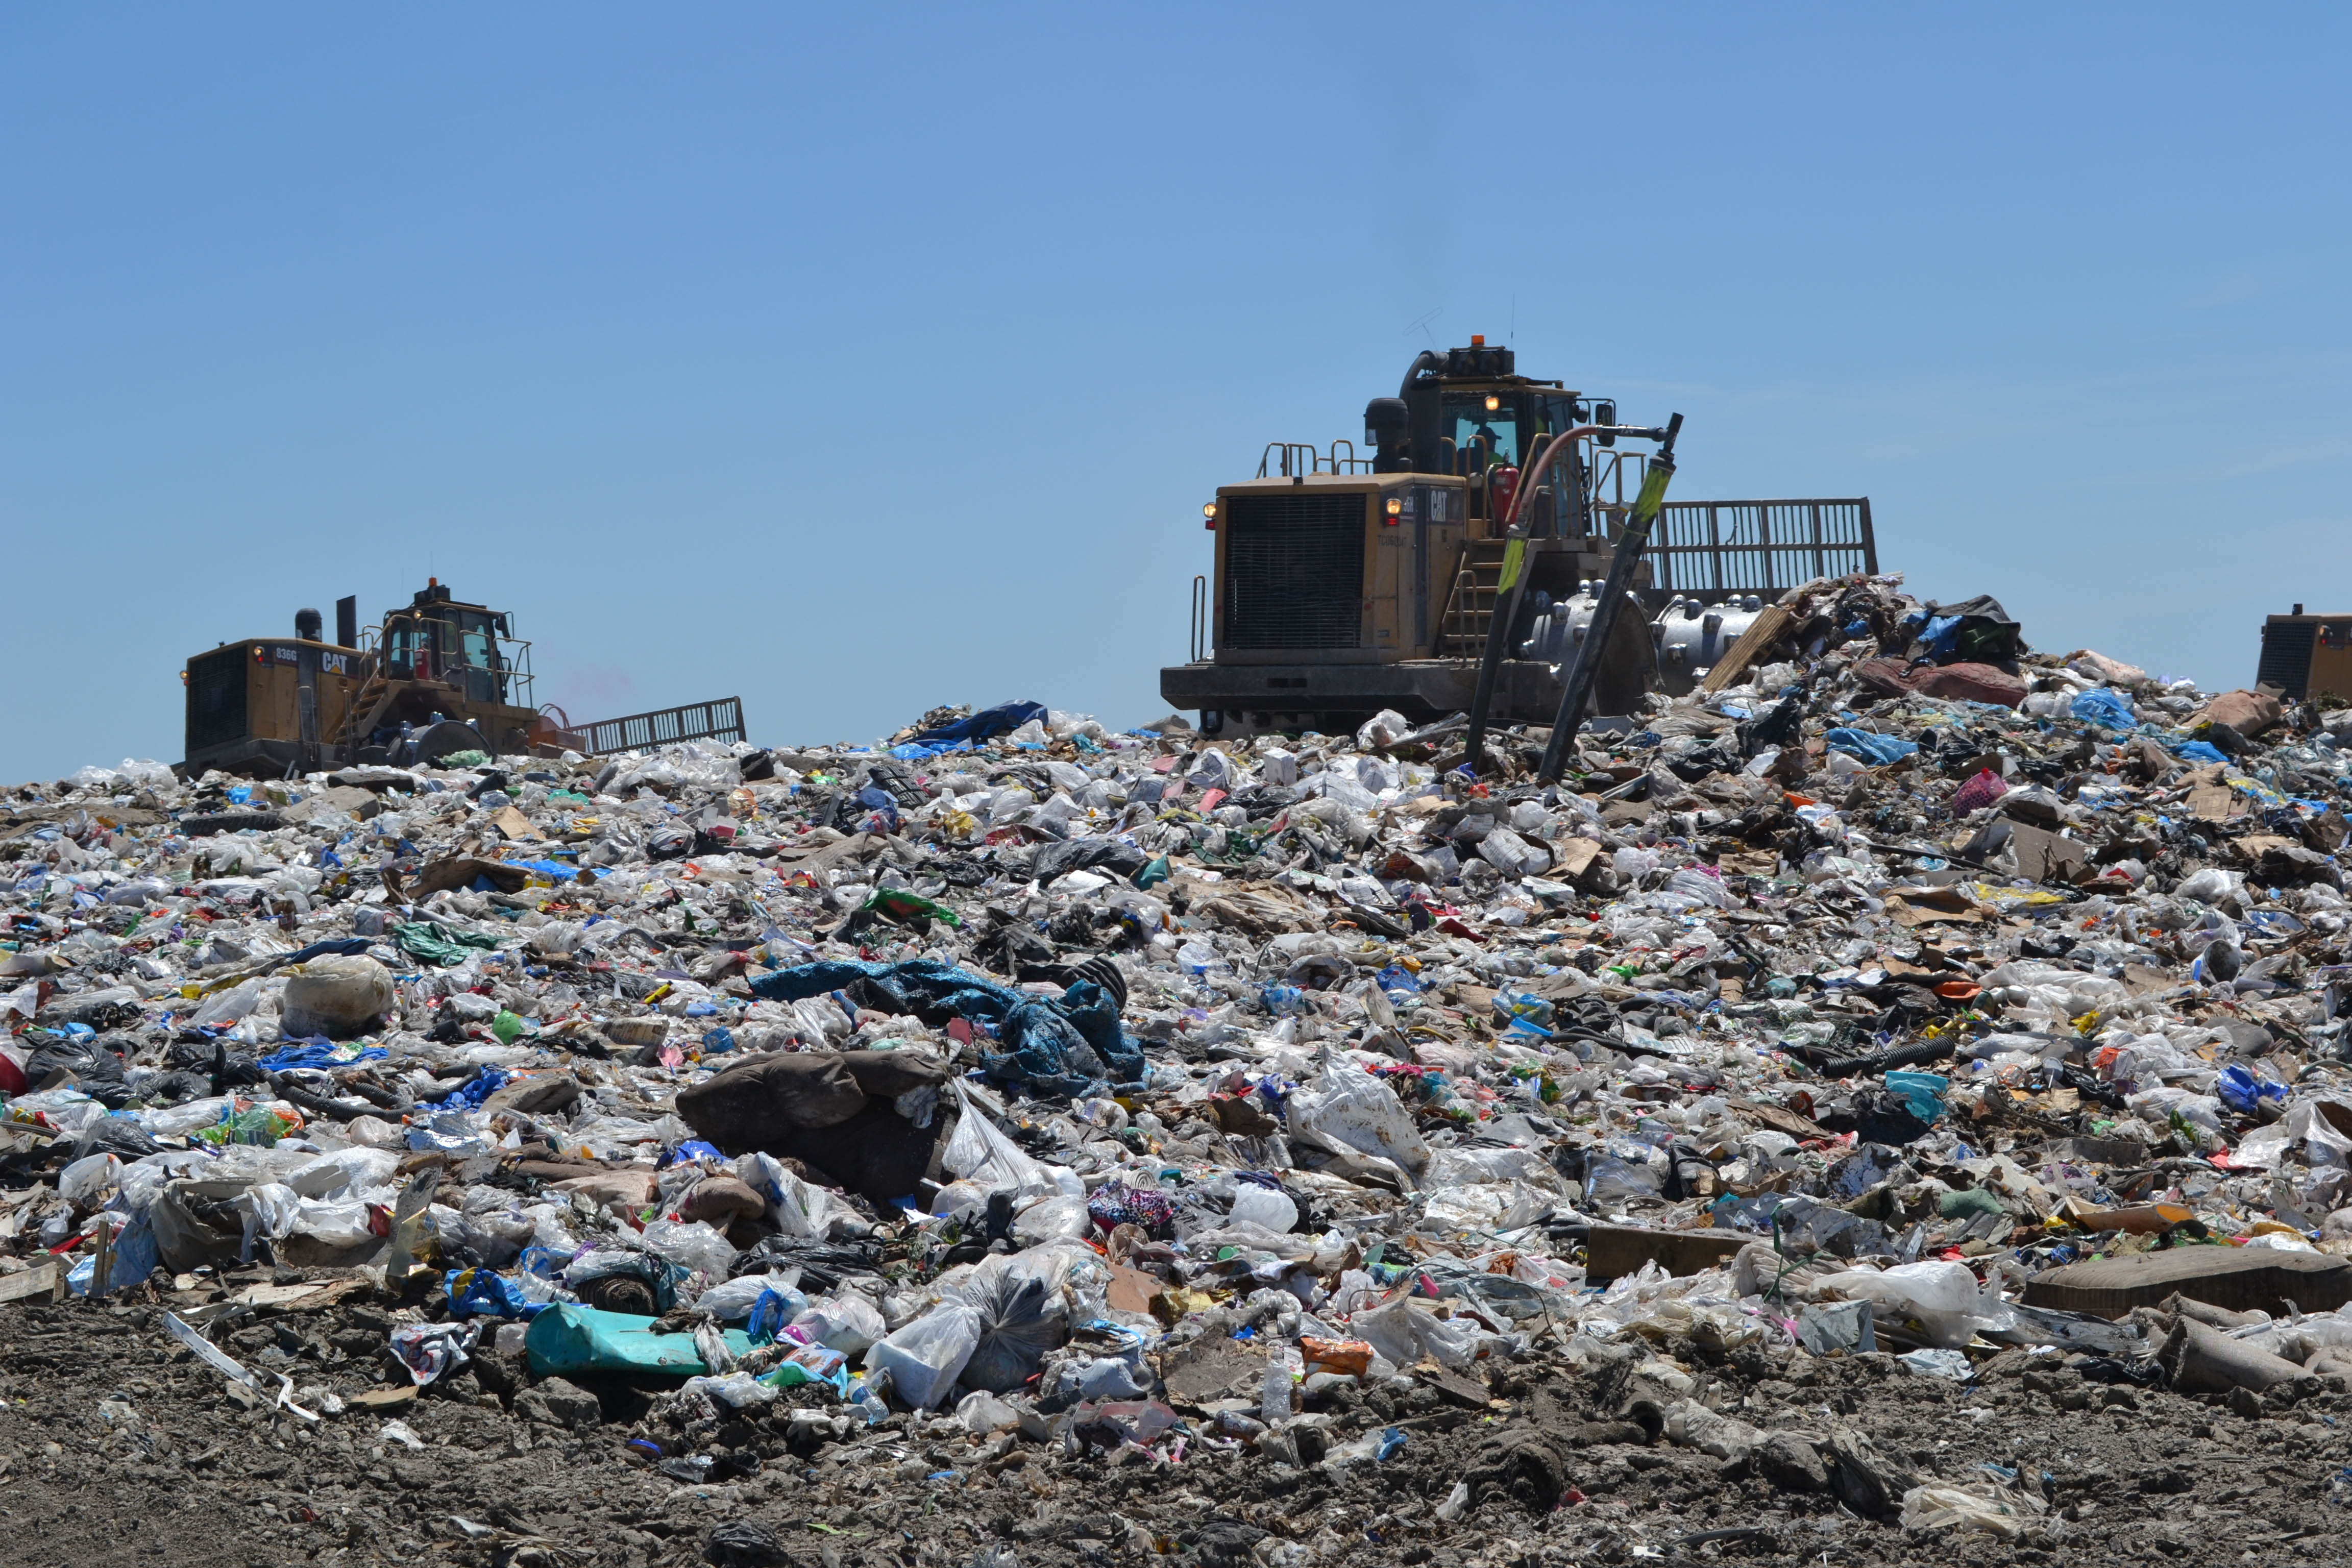 About 5,000 Tons Of Trash From Chicago And The Surrounding Is Are Dumped  Every Day At